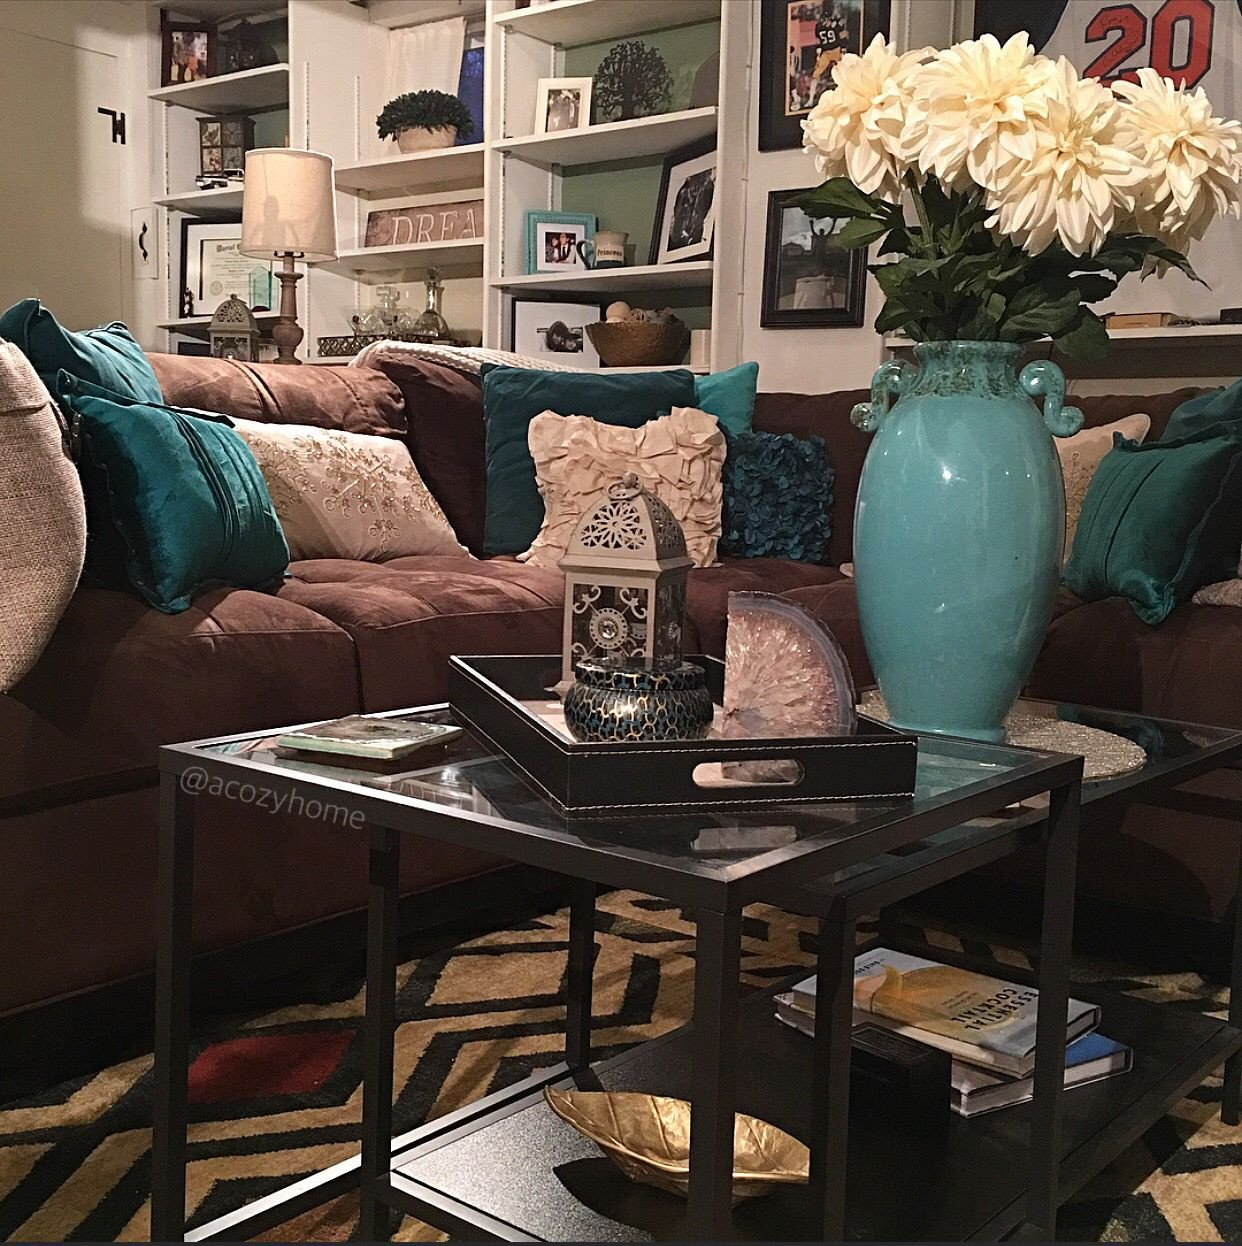 Teal and Brown Home Decor Elegant Cozy Brown Couch with Teal Accents Turquoise and Brown Built In Shelves Ikea Nesting Table